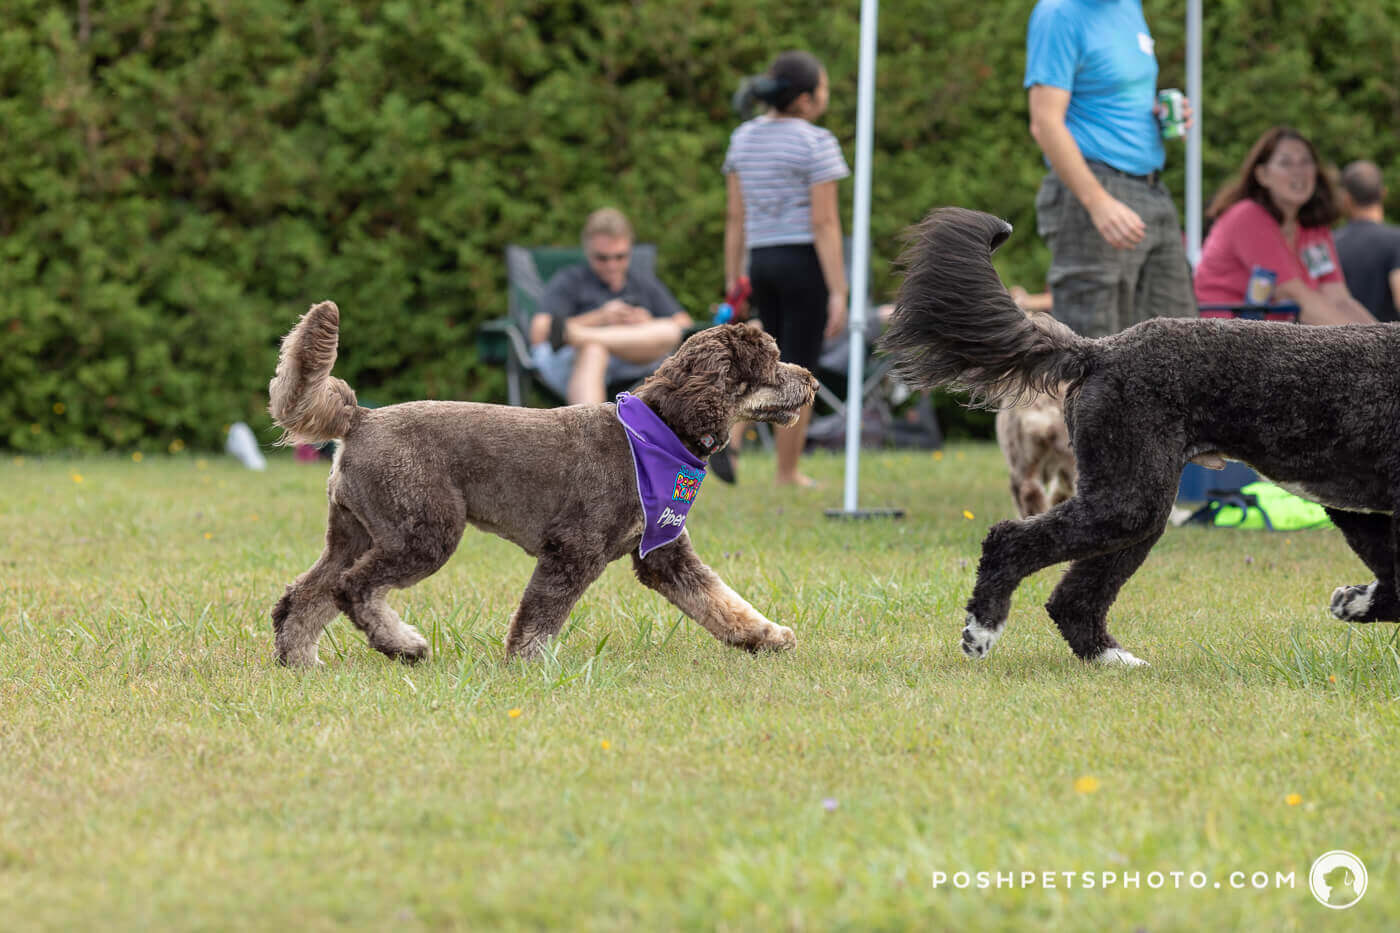 black and brown dog chasing each other